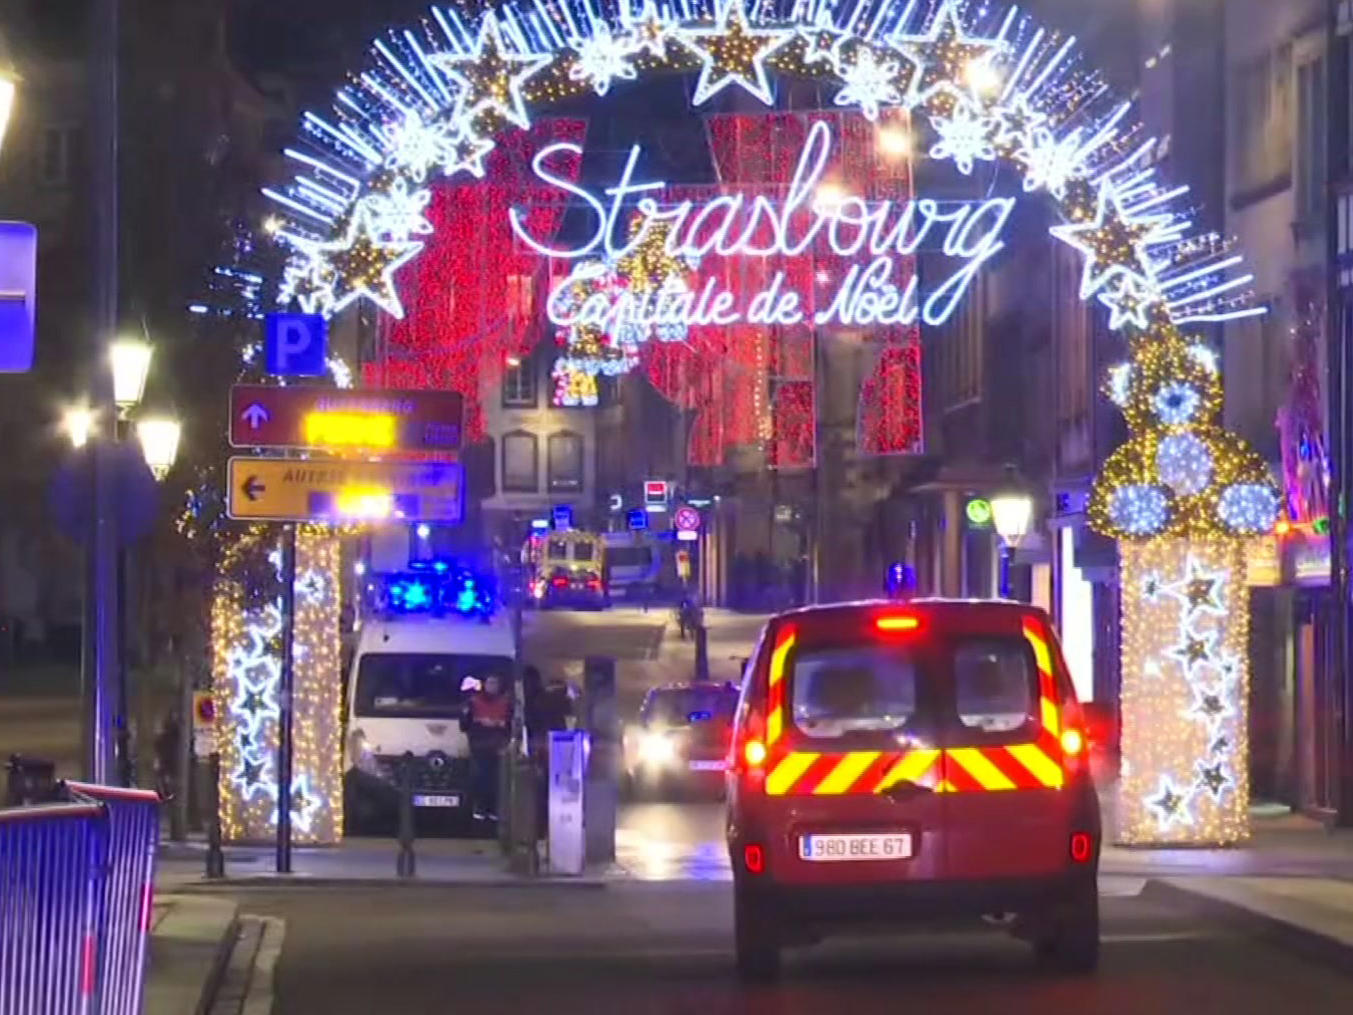 Gunshots near Strasbourg Christmas market leave one dead - fire department